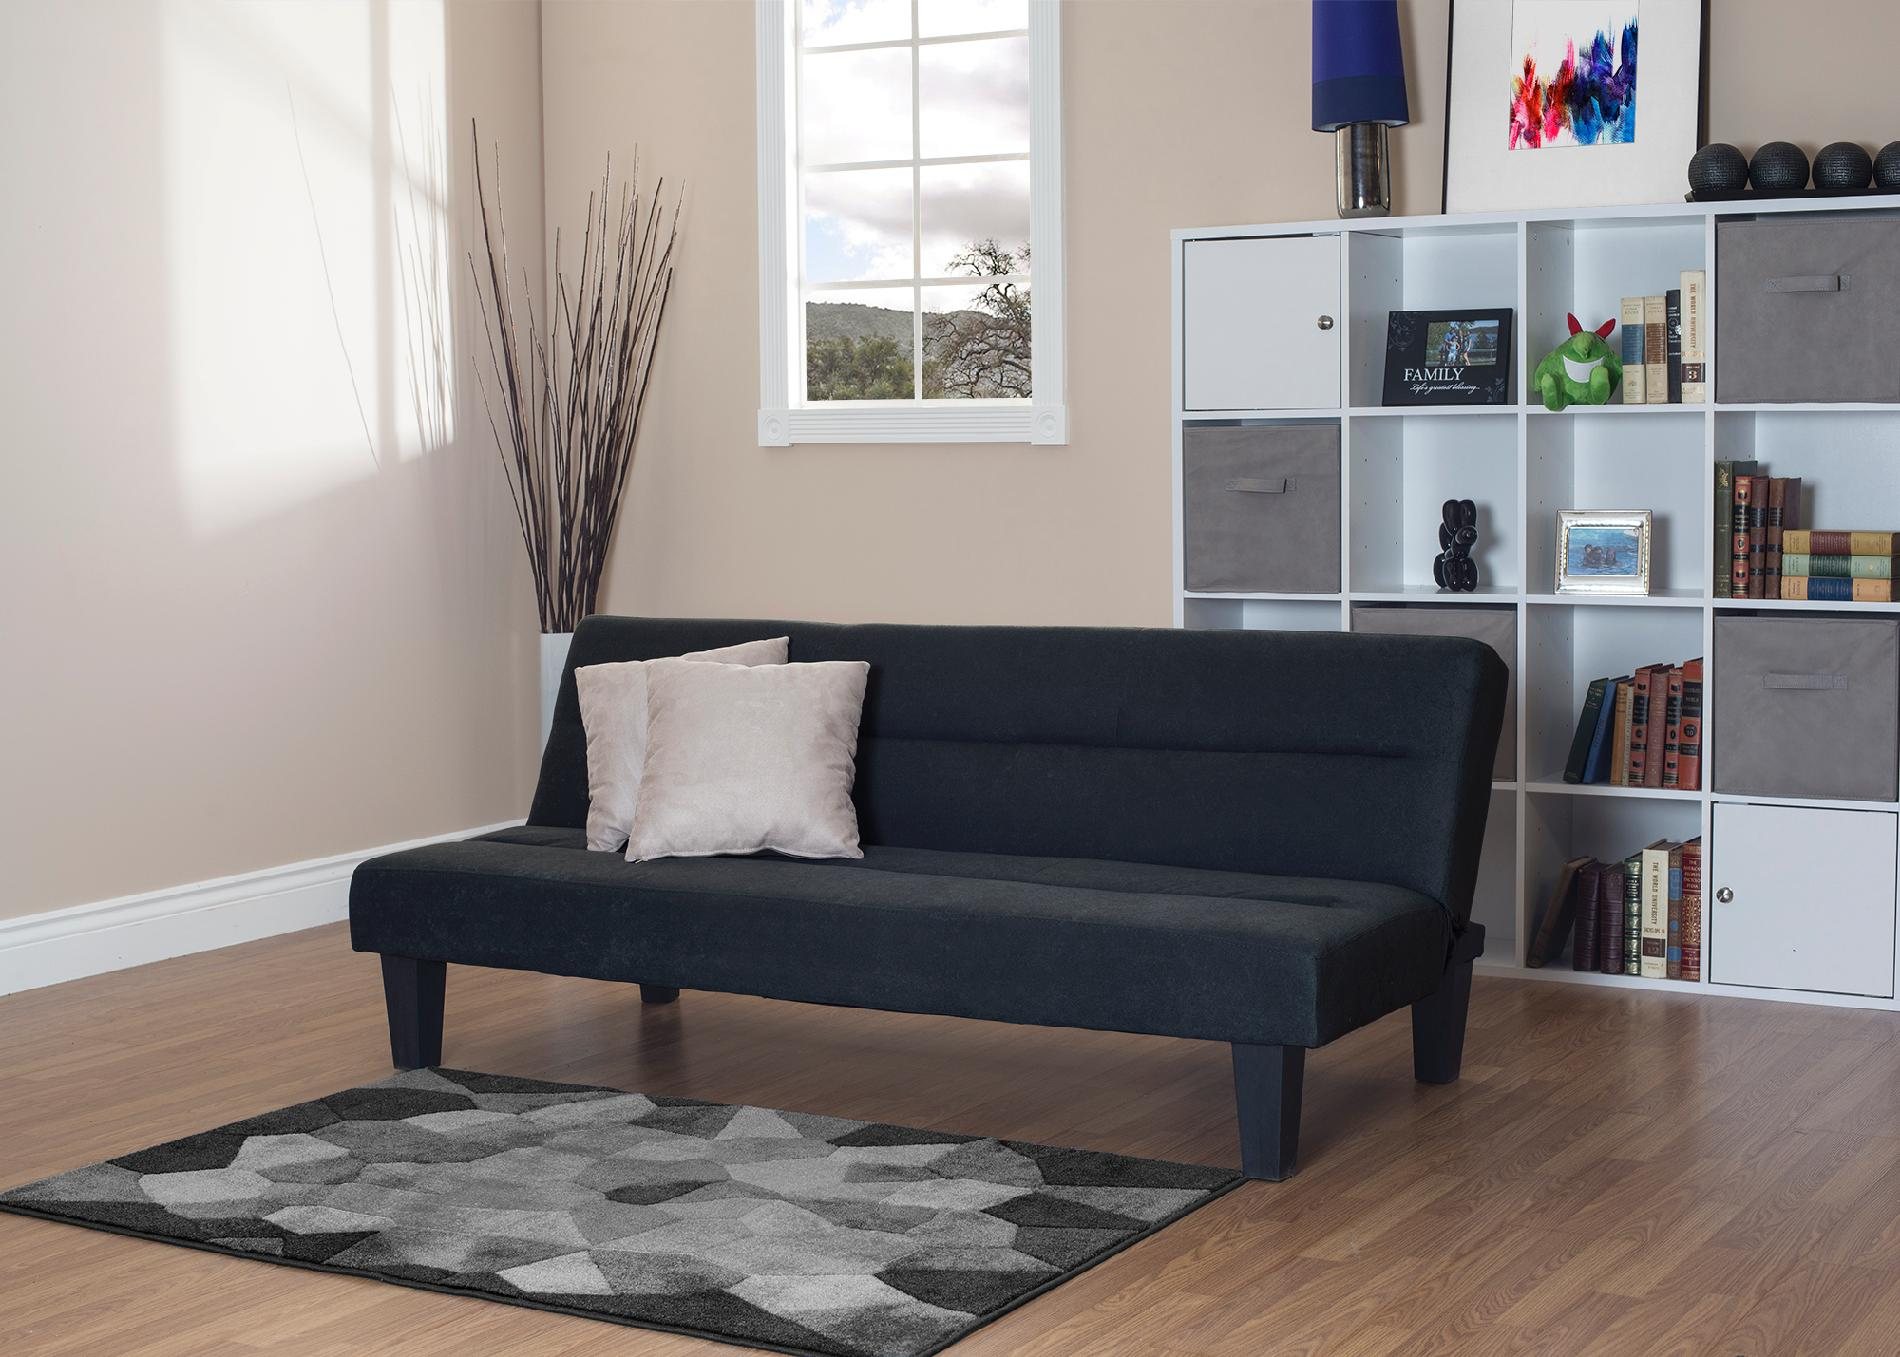 kmart jaclyn smith sleeper sofa cushion support straps dylan futon find functional furniture at